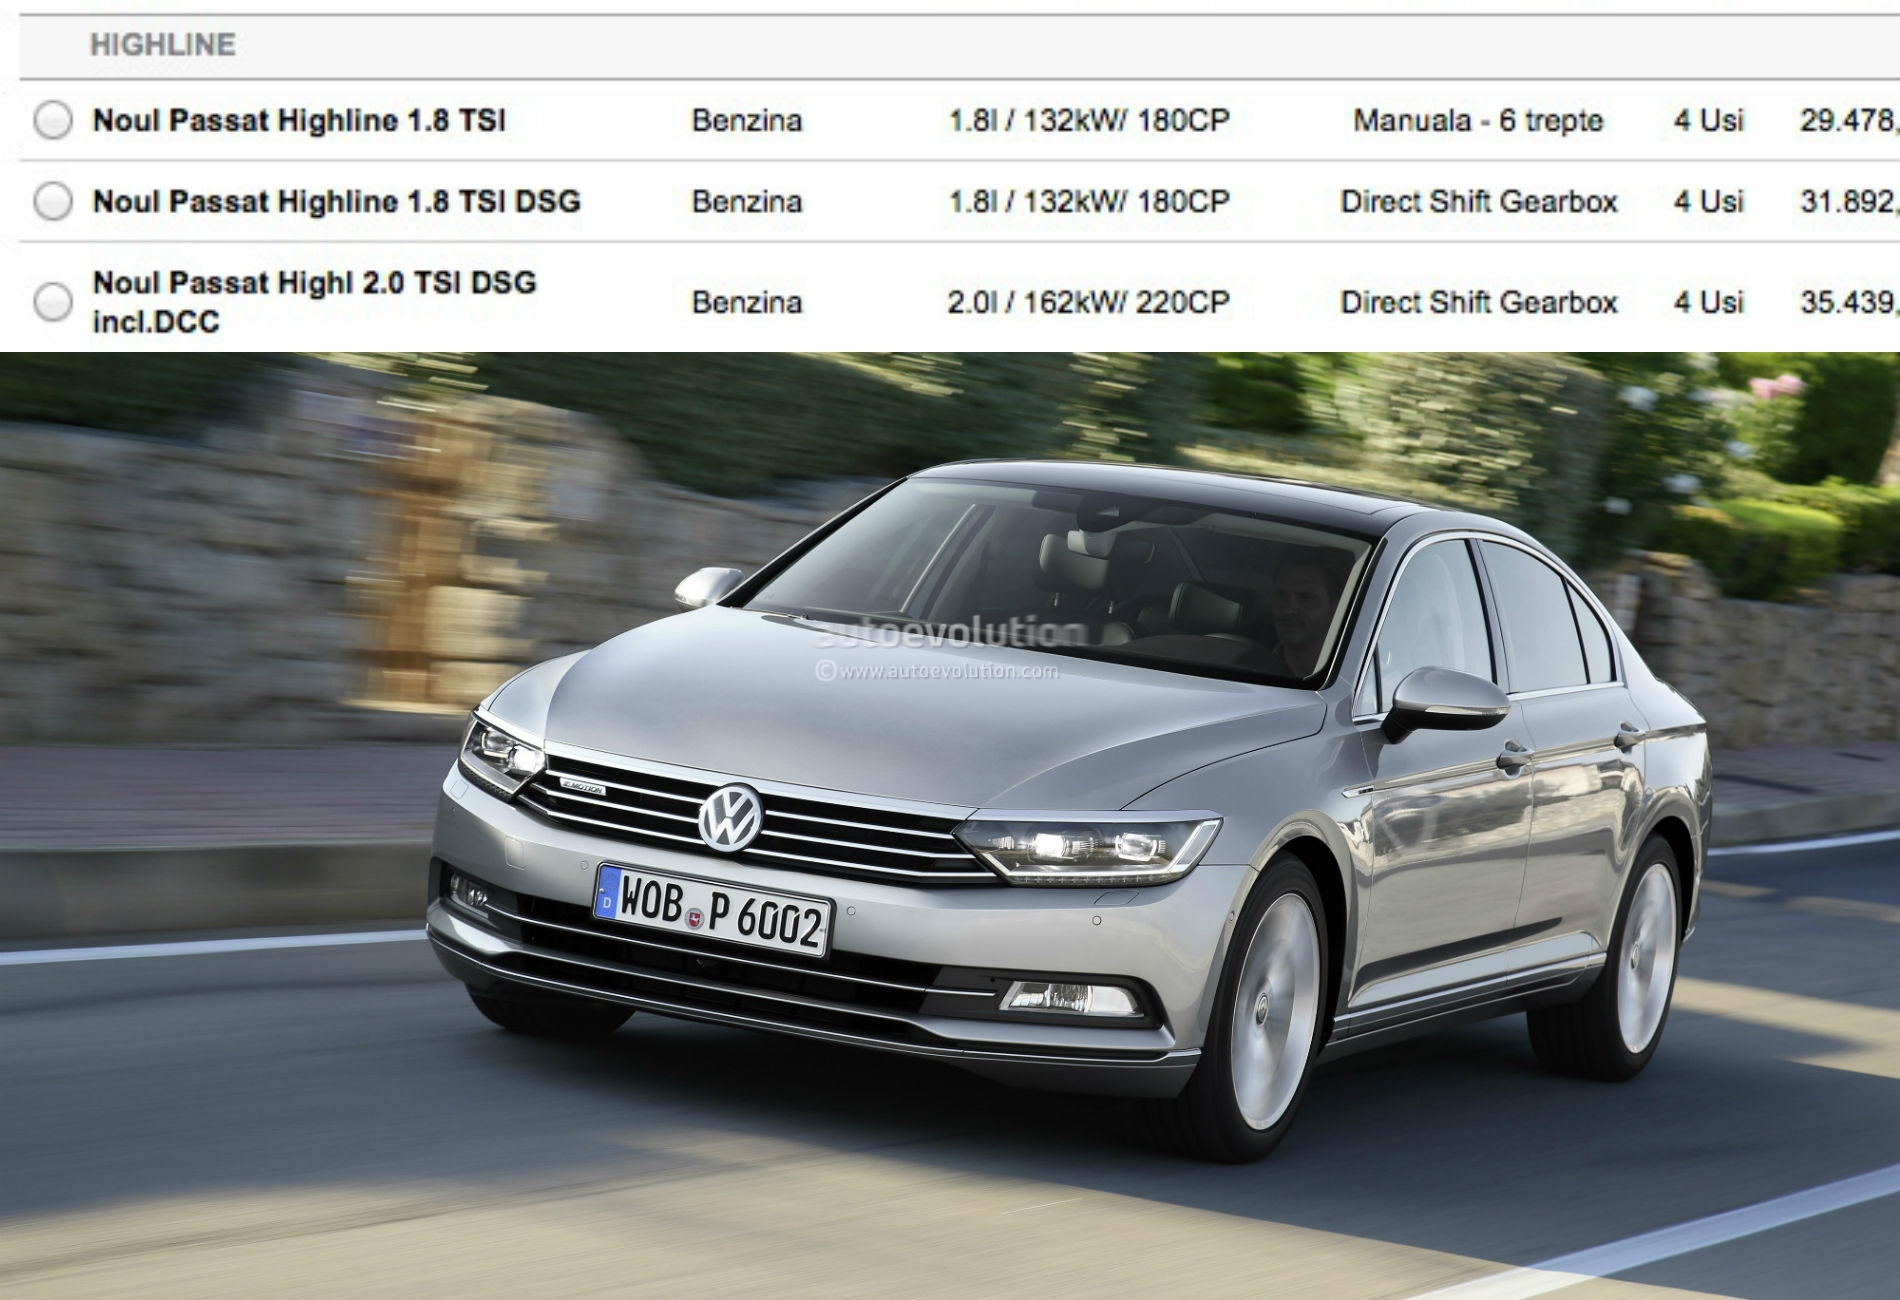 2015 volkswagen passat b8 1 8 tsi and 2 0 tsi engines launched autoevolution. Black Bedroom Furniture Sets. Home Design Ideas